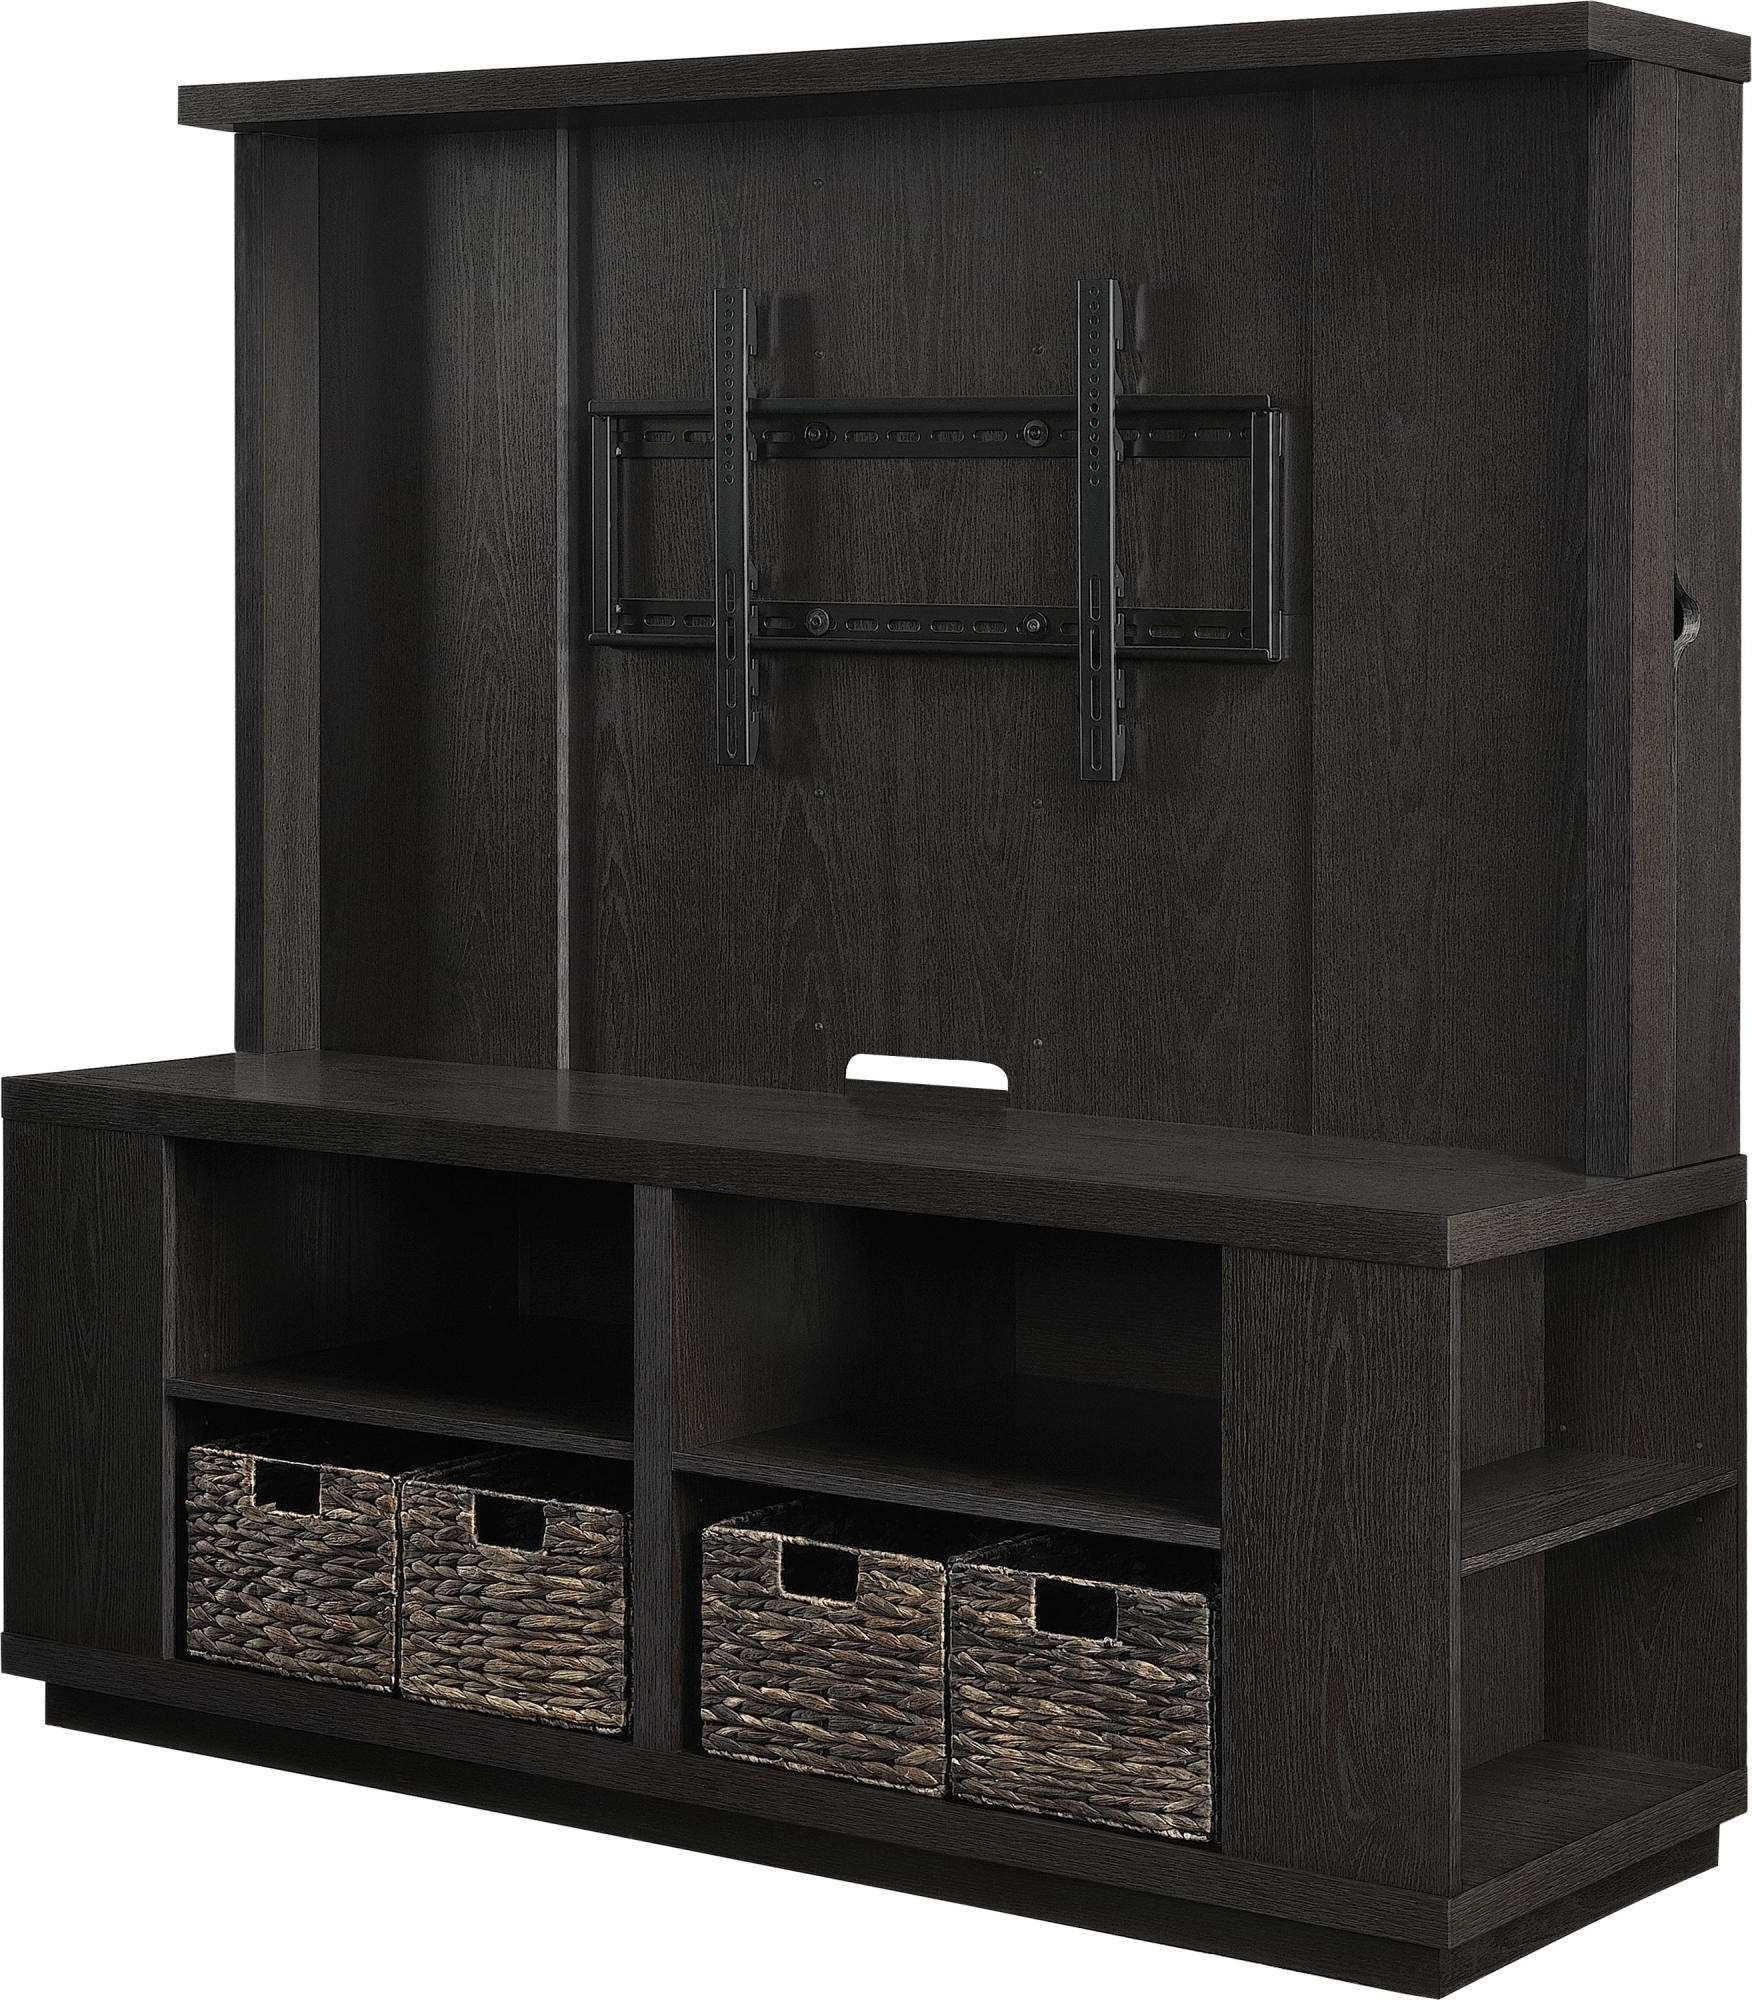 "Free Ship Furnishings | 60"" Flat Panel Tv Stand Dylan Hec With For Tv Stands With Baskets (View 4 of 15)"